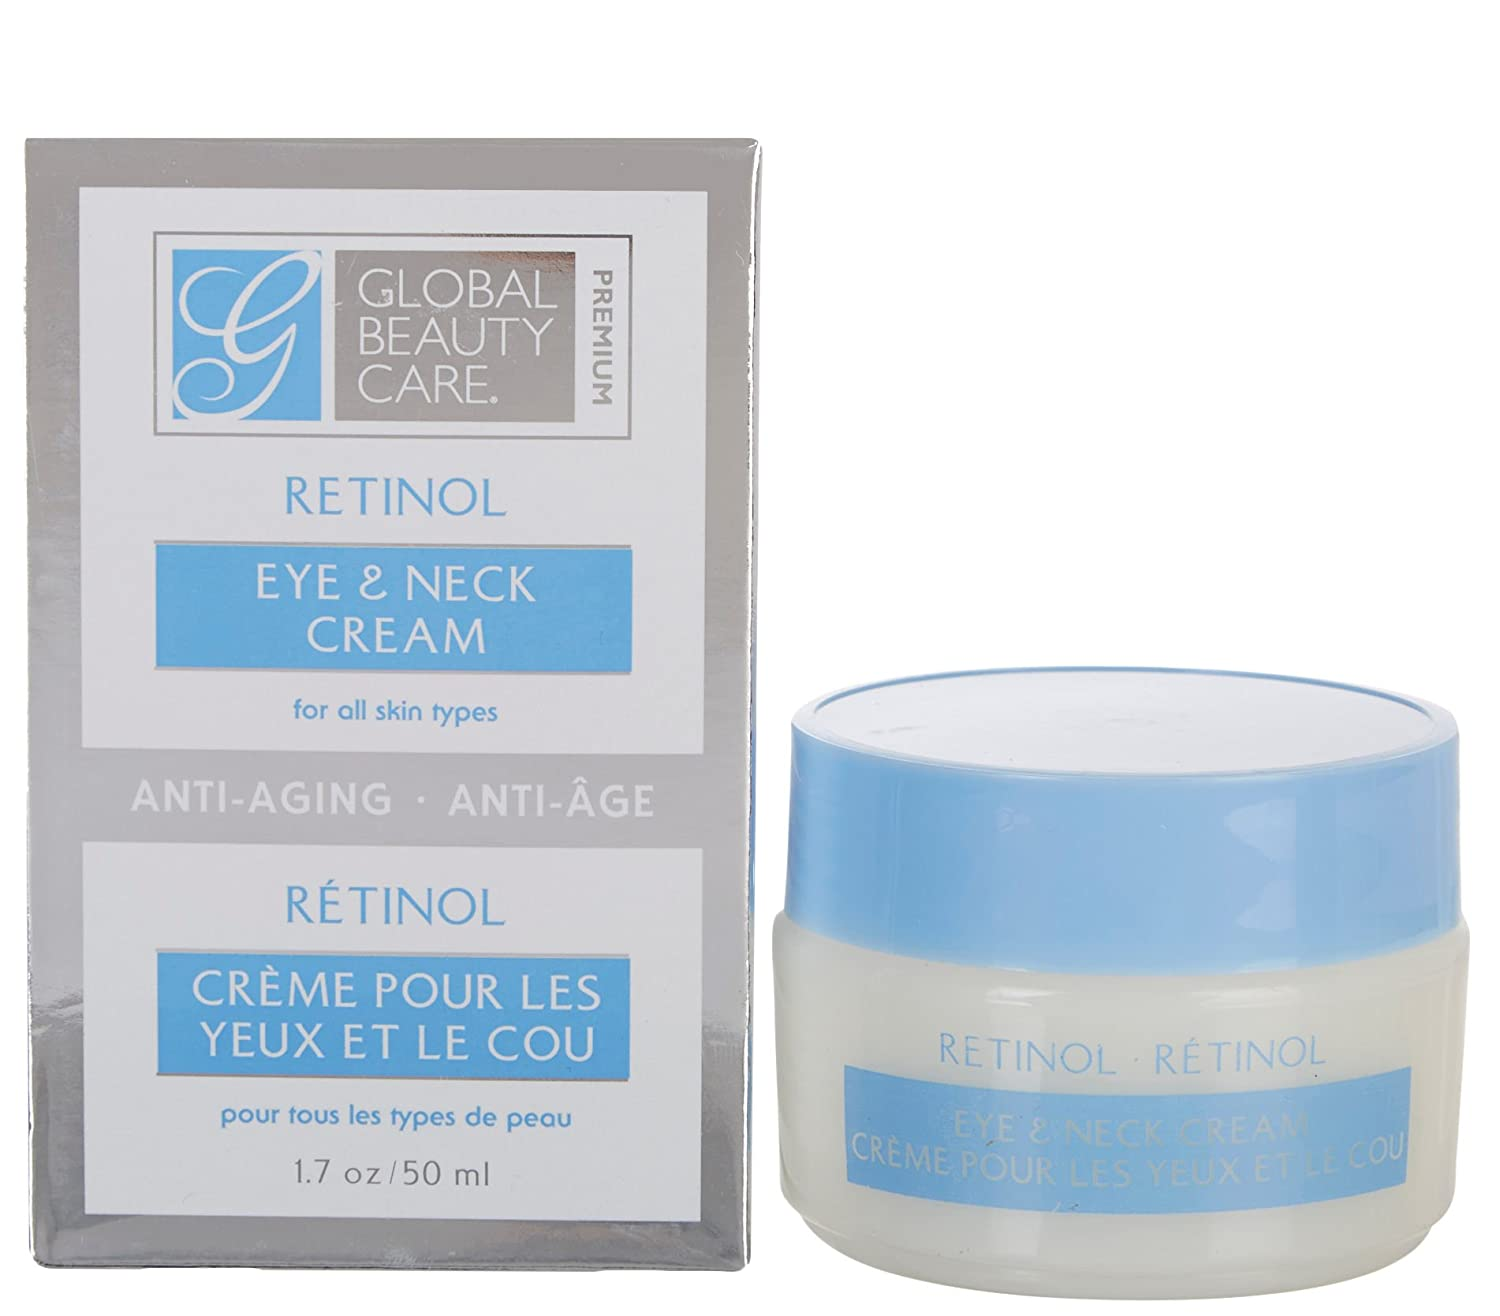 Global Beauty Care Premium Eye & Neck Cream